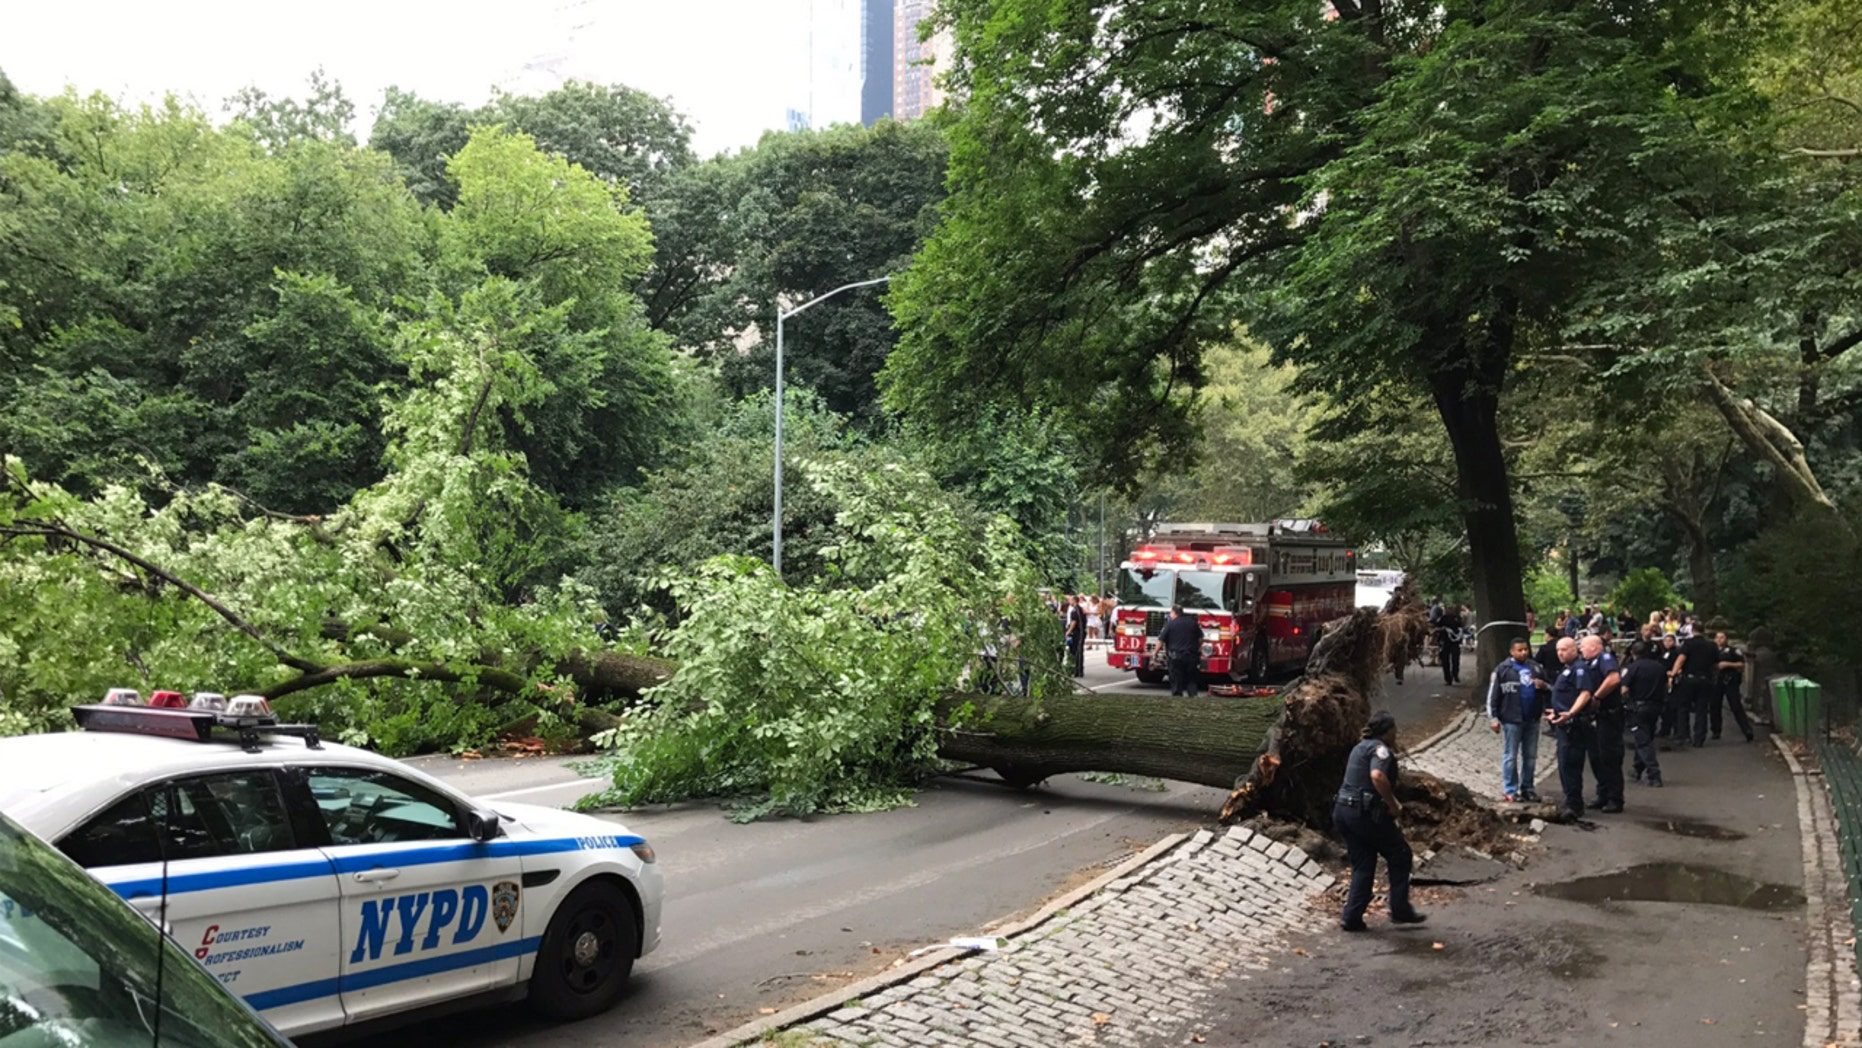 The scene after a massive tree fell in New York's Central Park, injuring a woman and three children.